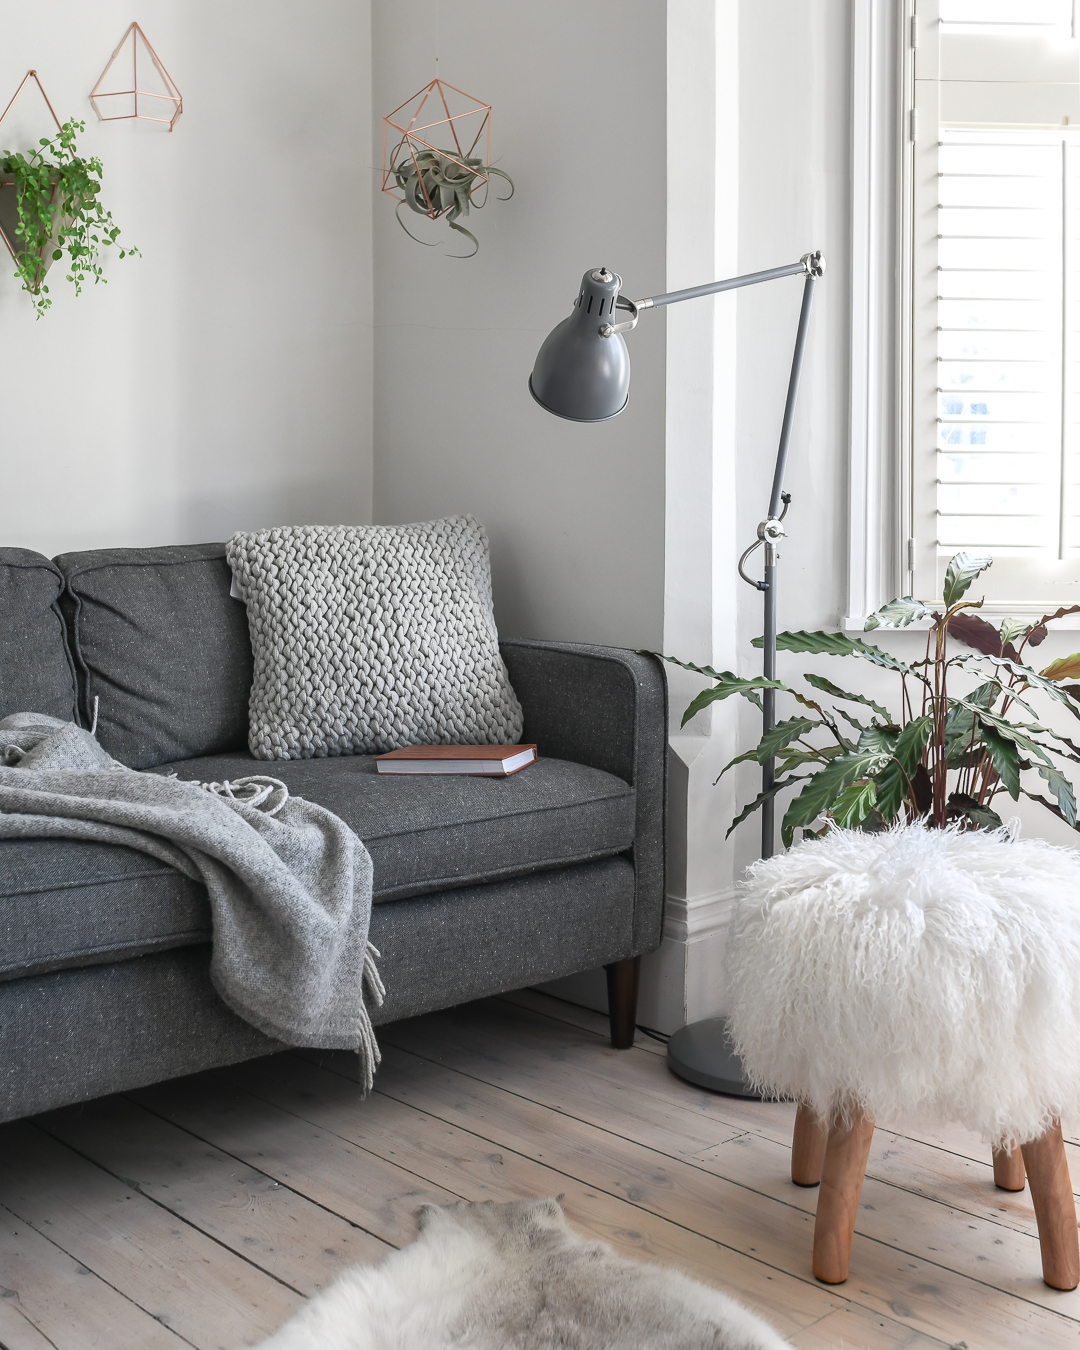 the art of living well with The White Company spring range